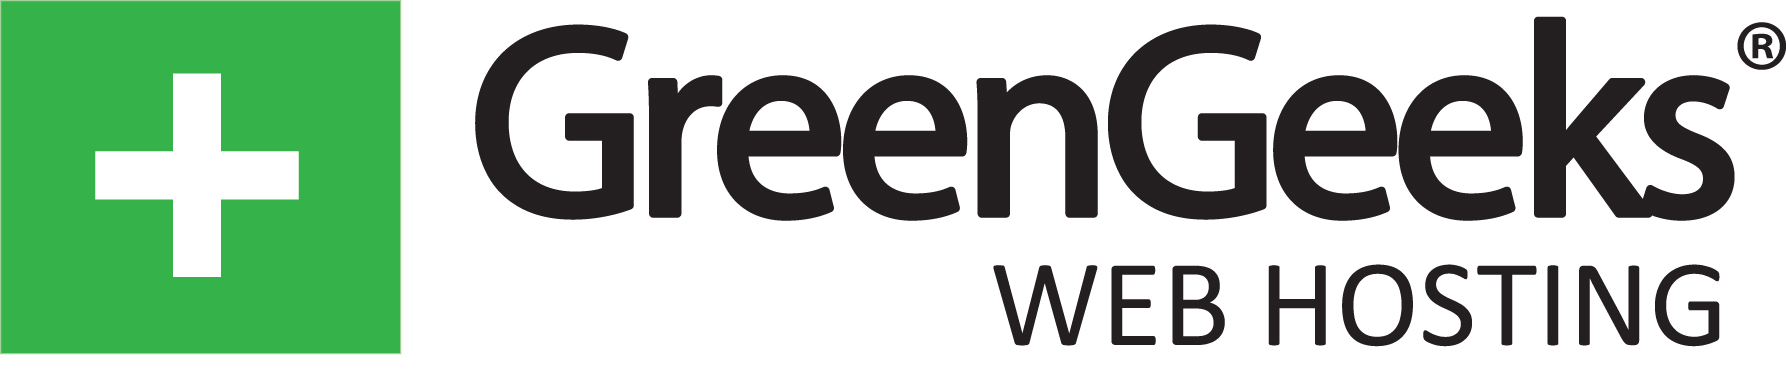 GreenGeeks: Save up to 75% with Premium Eco-Hosting